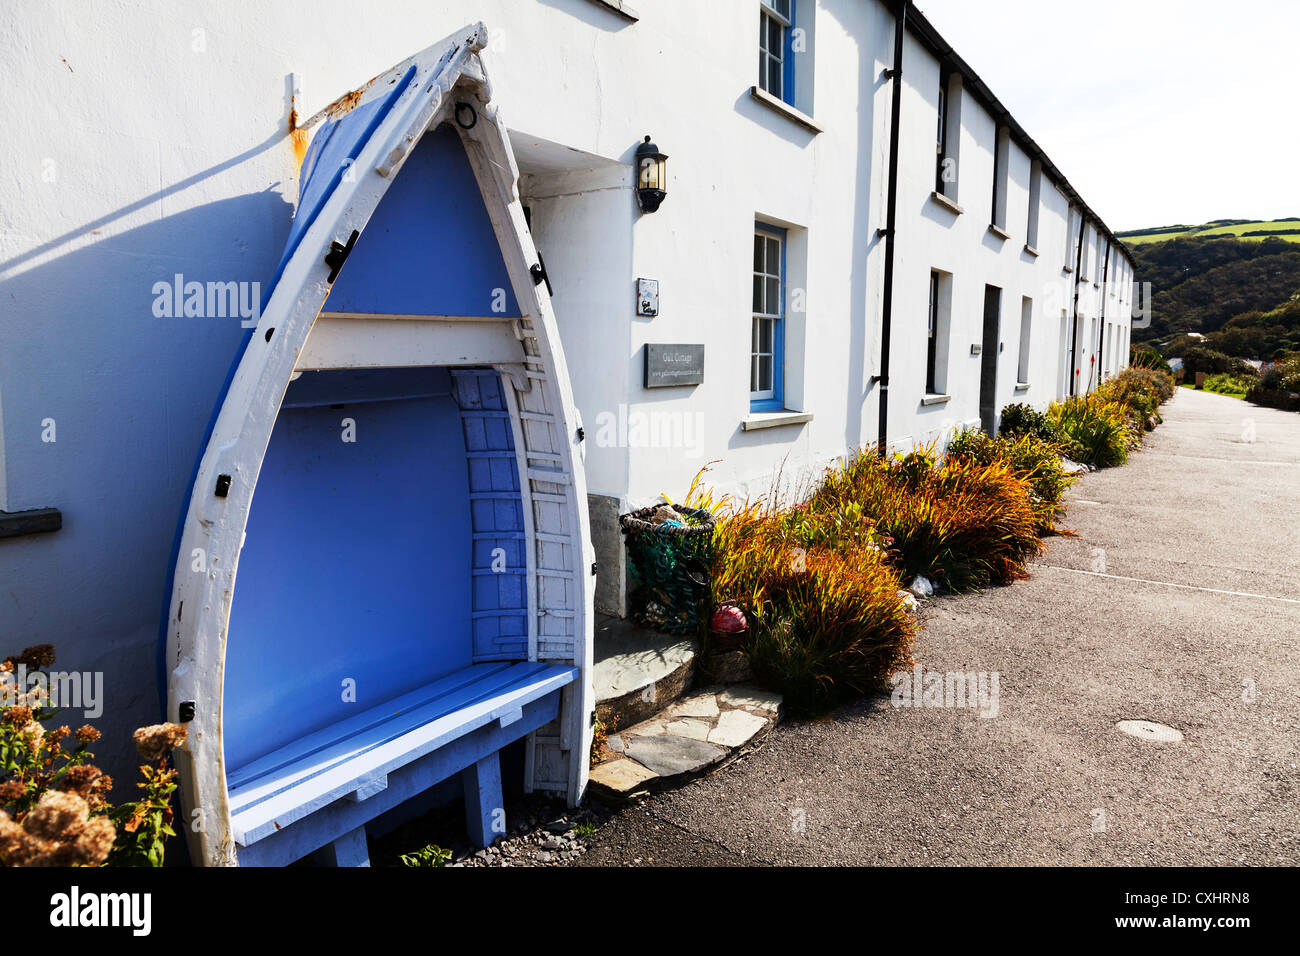 Interesting boat shaped seat bench outside home in Boscastle, Cornwall - Stock Image